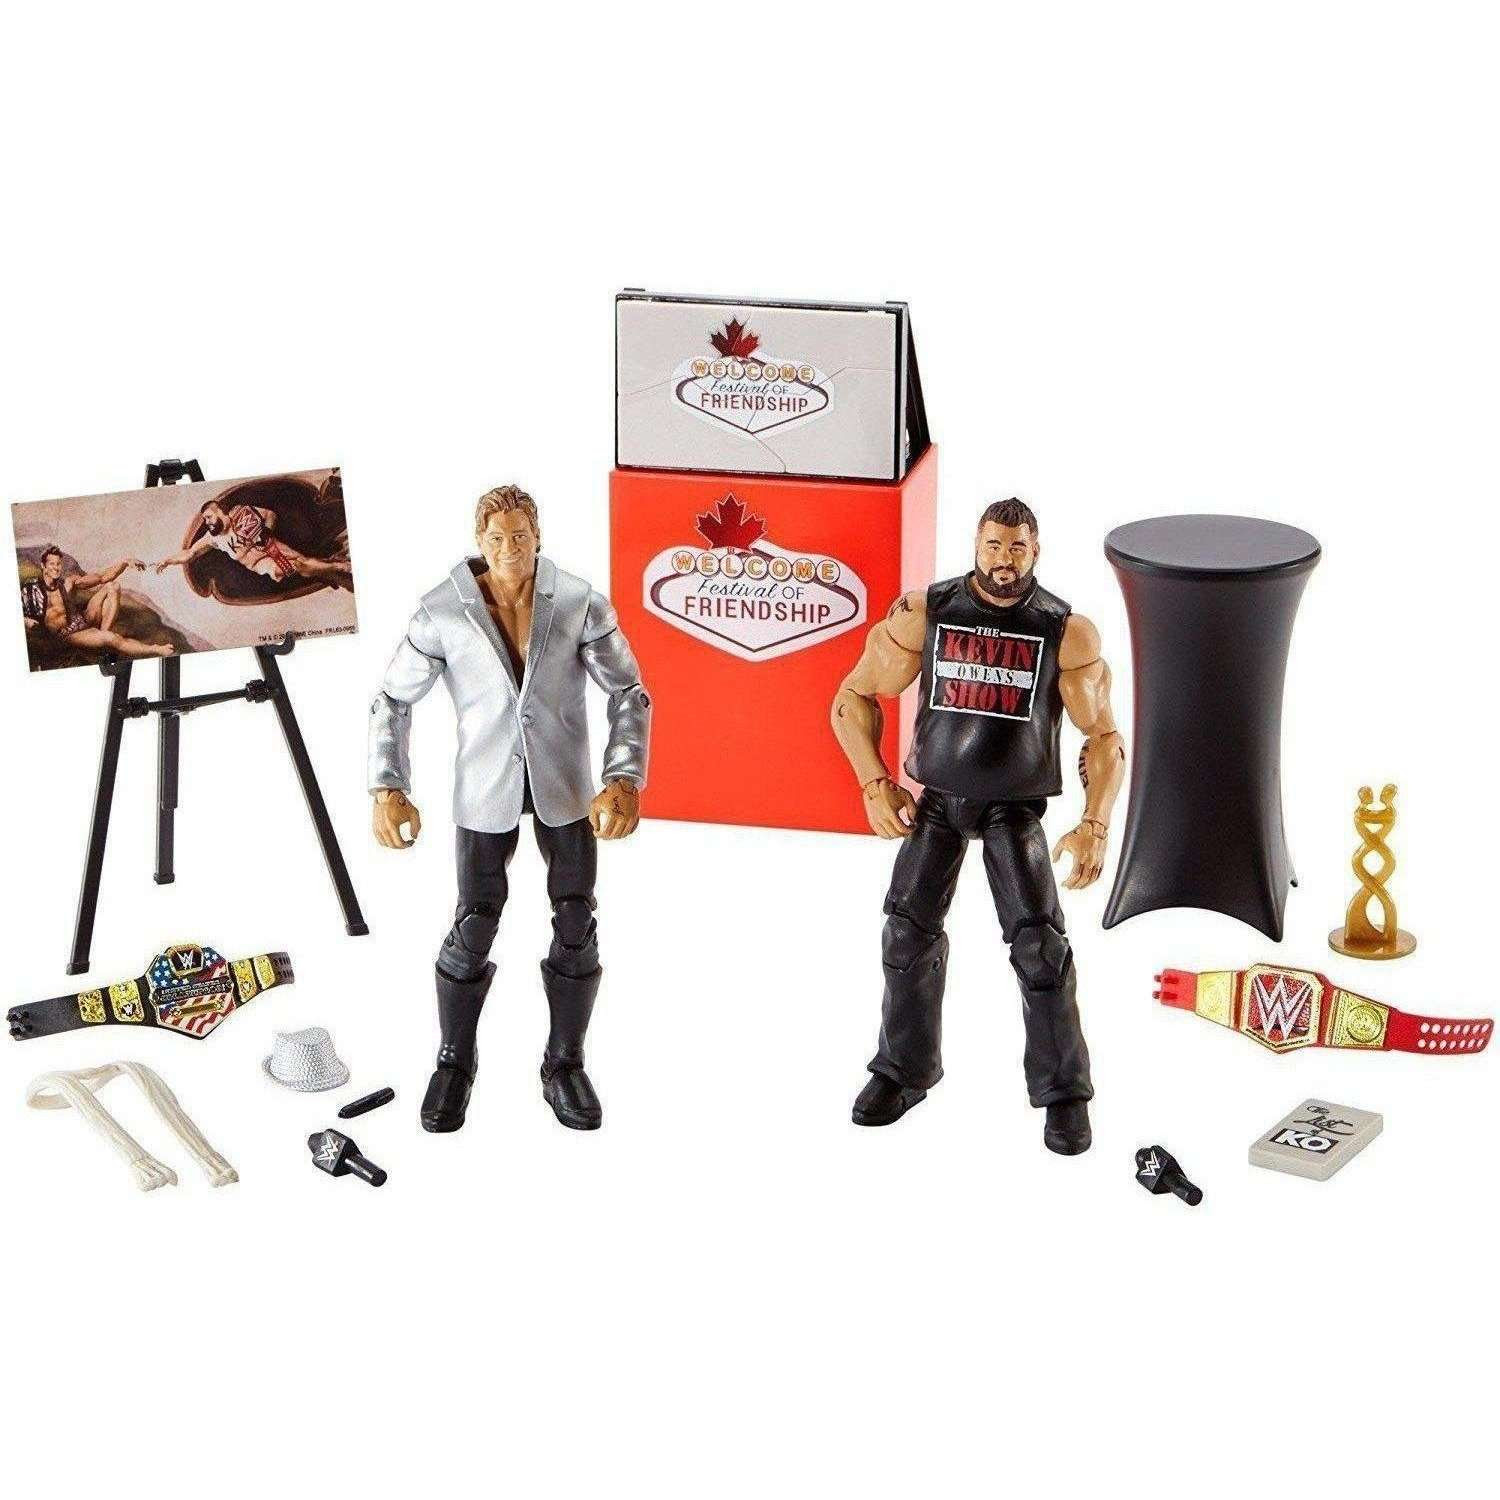 Image of WWE Welcome Festival Of Friendship Kevin Owens & Chris Jericho Figures - 2 Pack